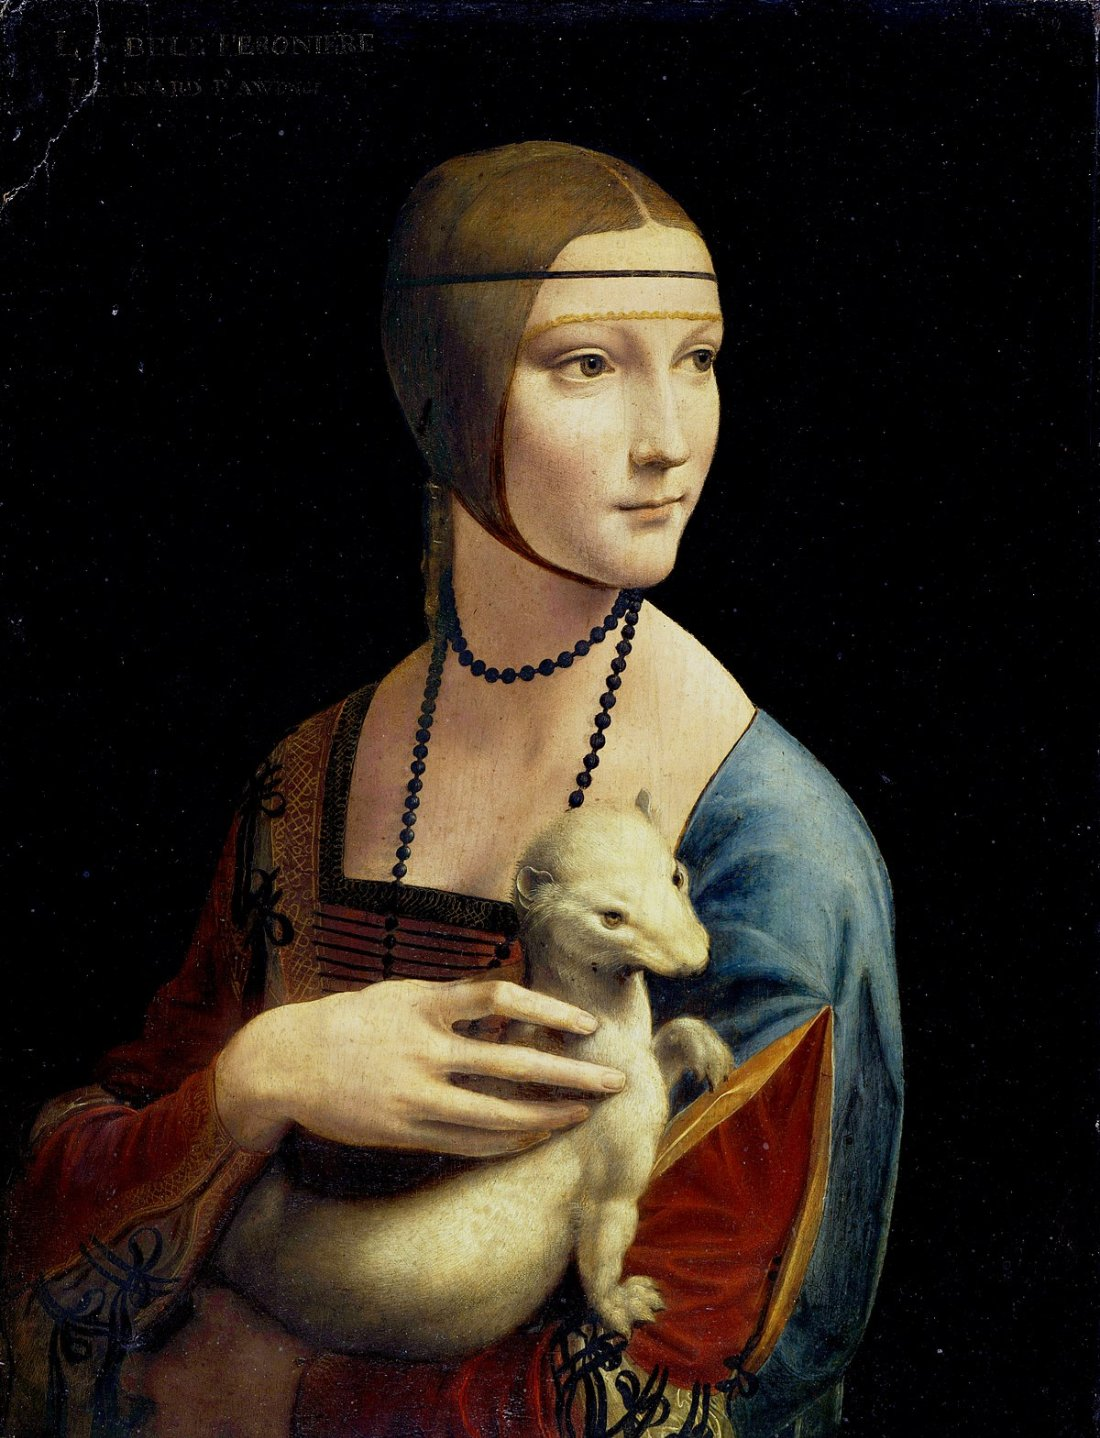 1200px-The_Lady_with_an_Ermine.jpg